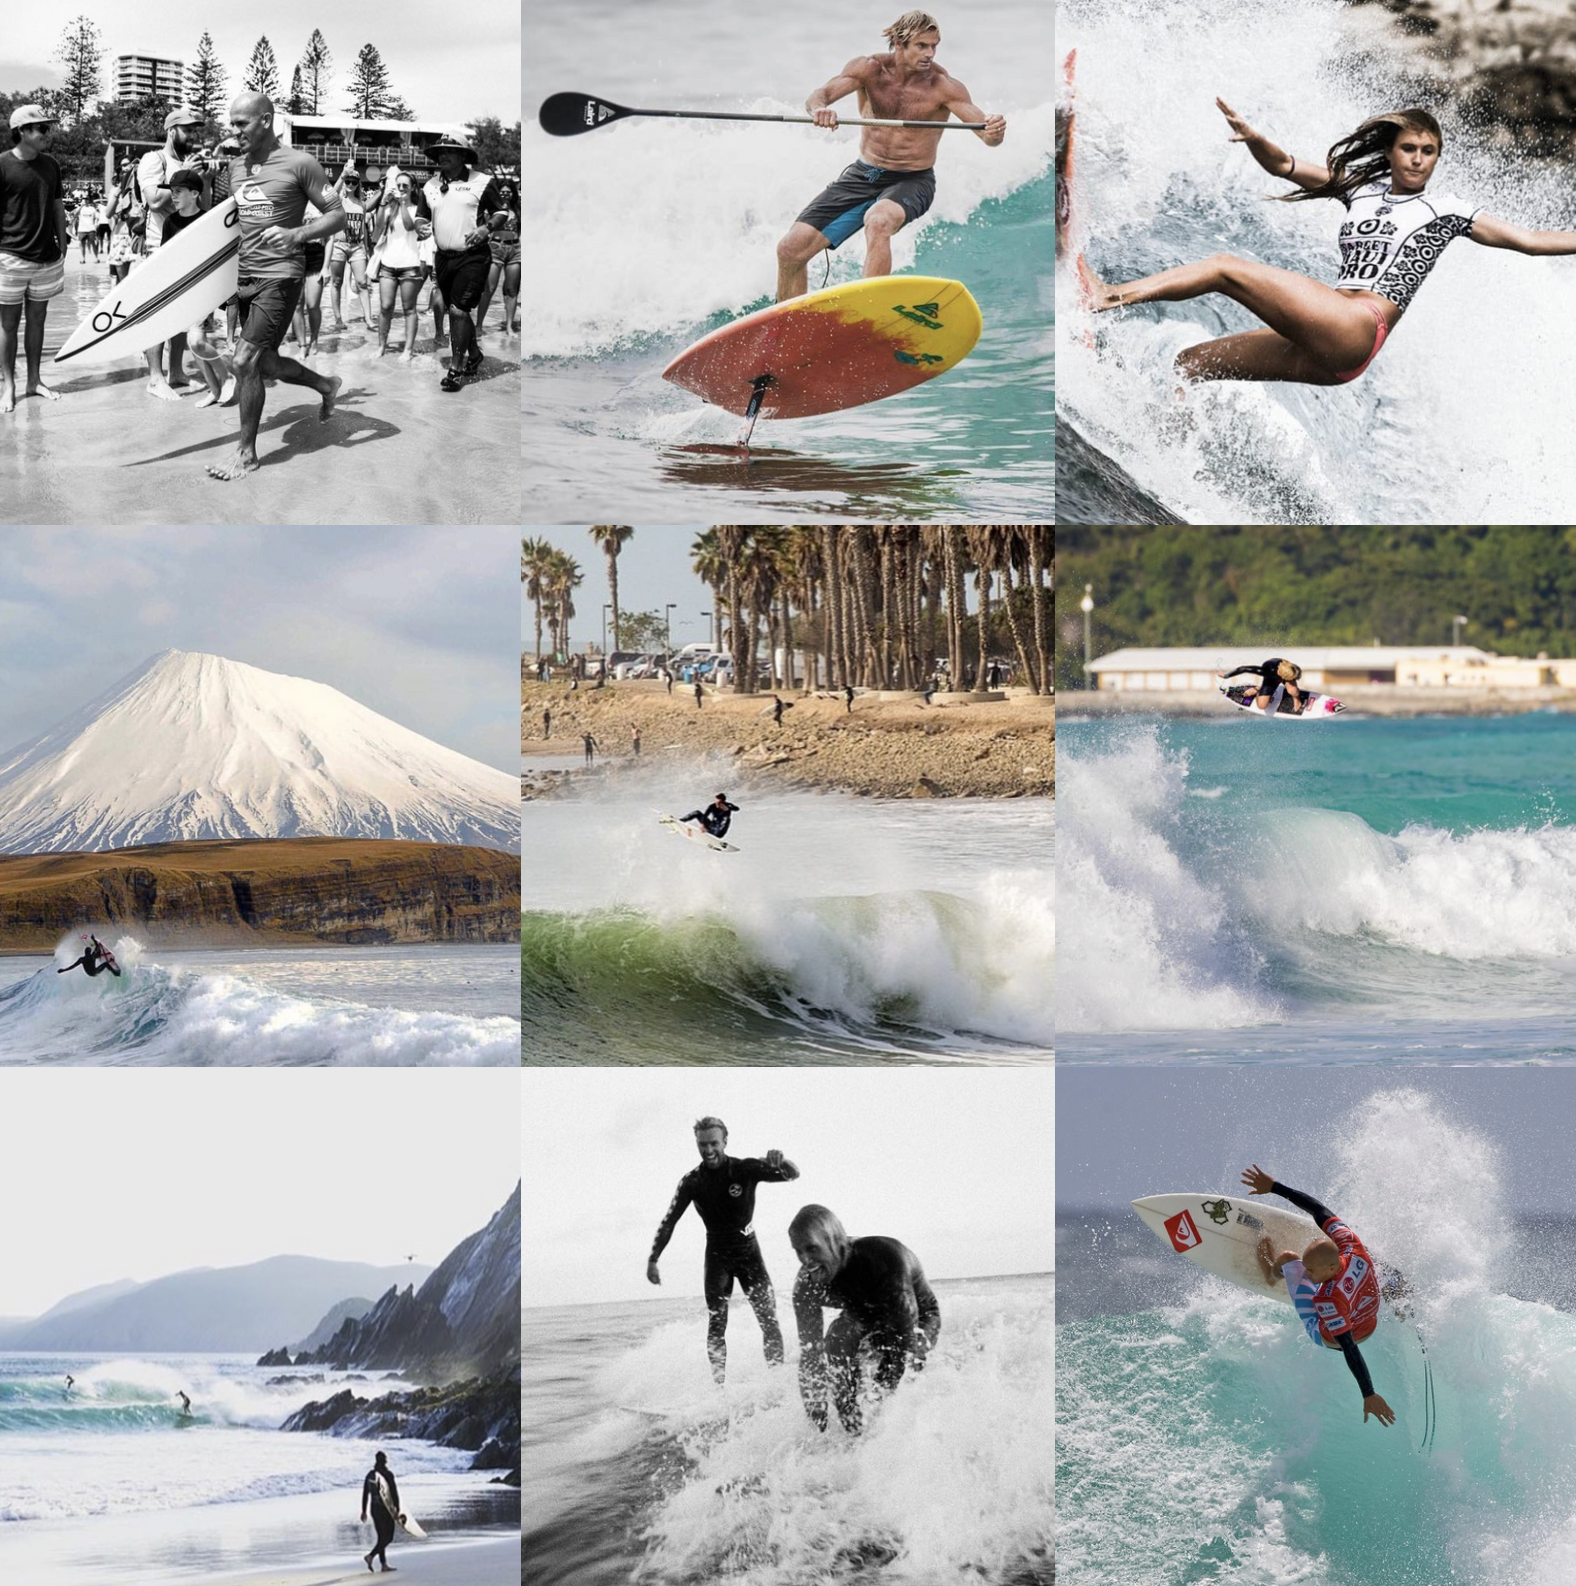 Top 10 Surfer Websites and Blogs